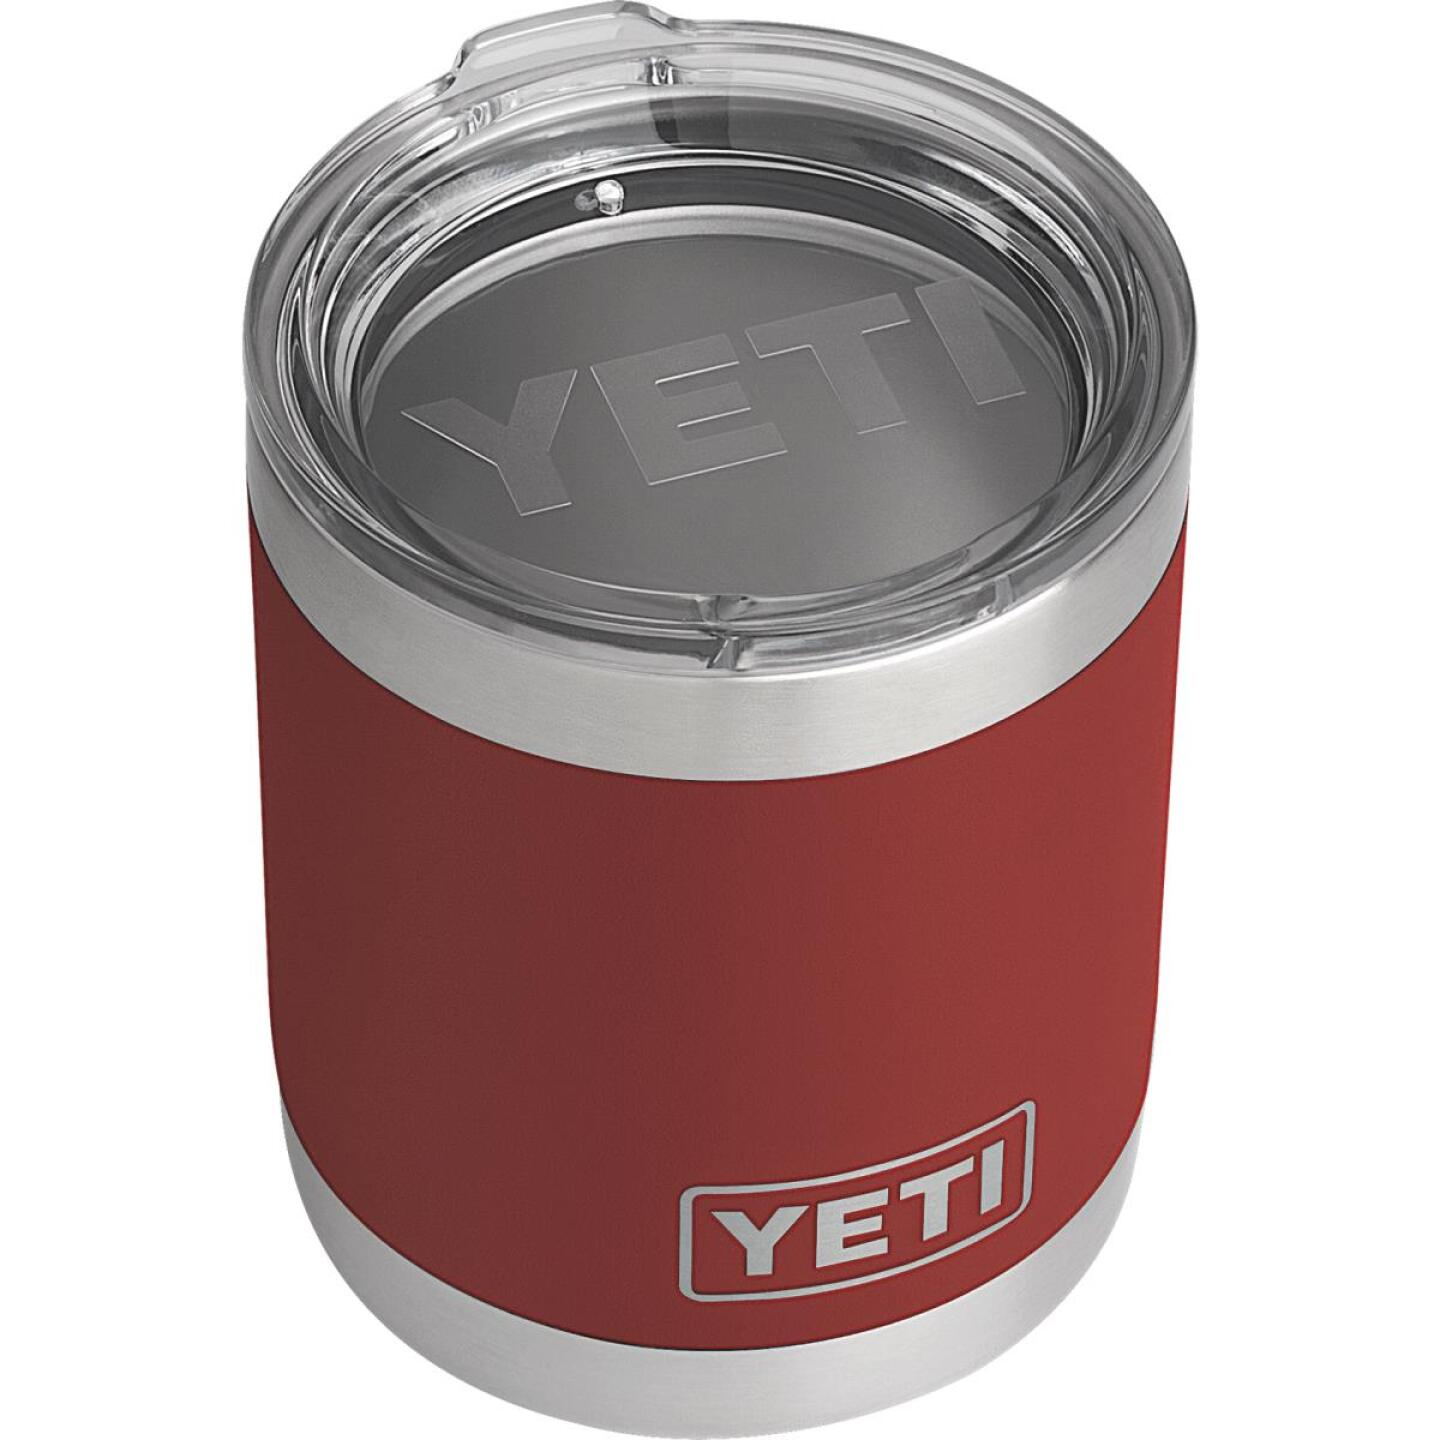 Yeti Rambler Lowball 10 Oz. Brick Red Stainless Steel Insulated Tumbler Image 1